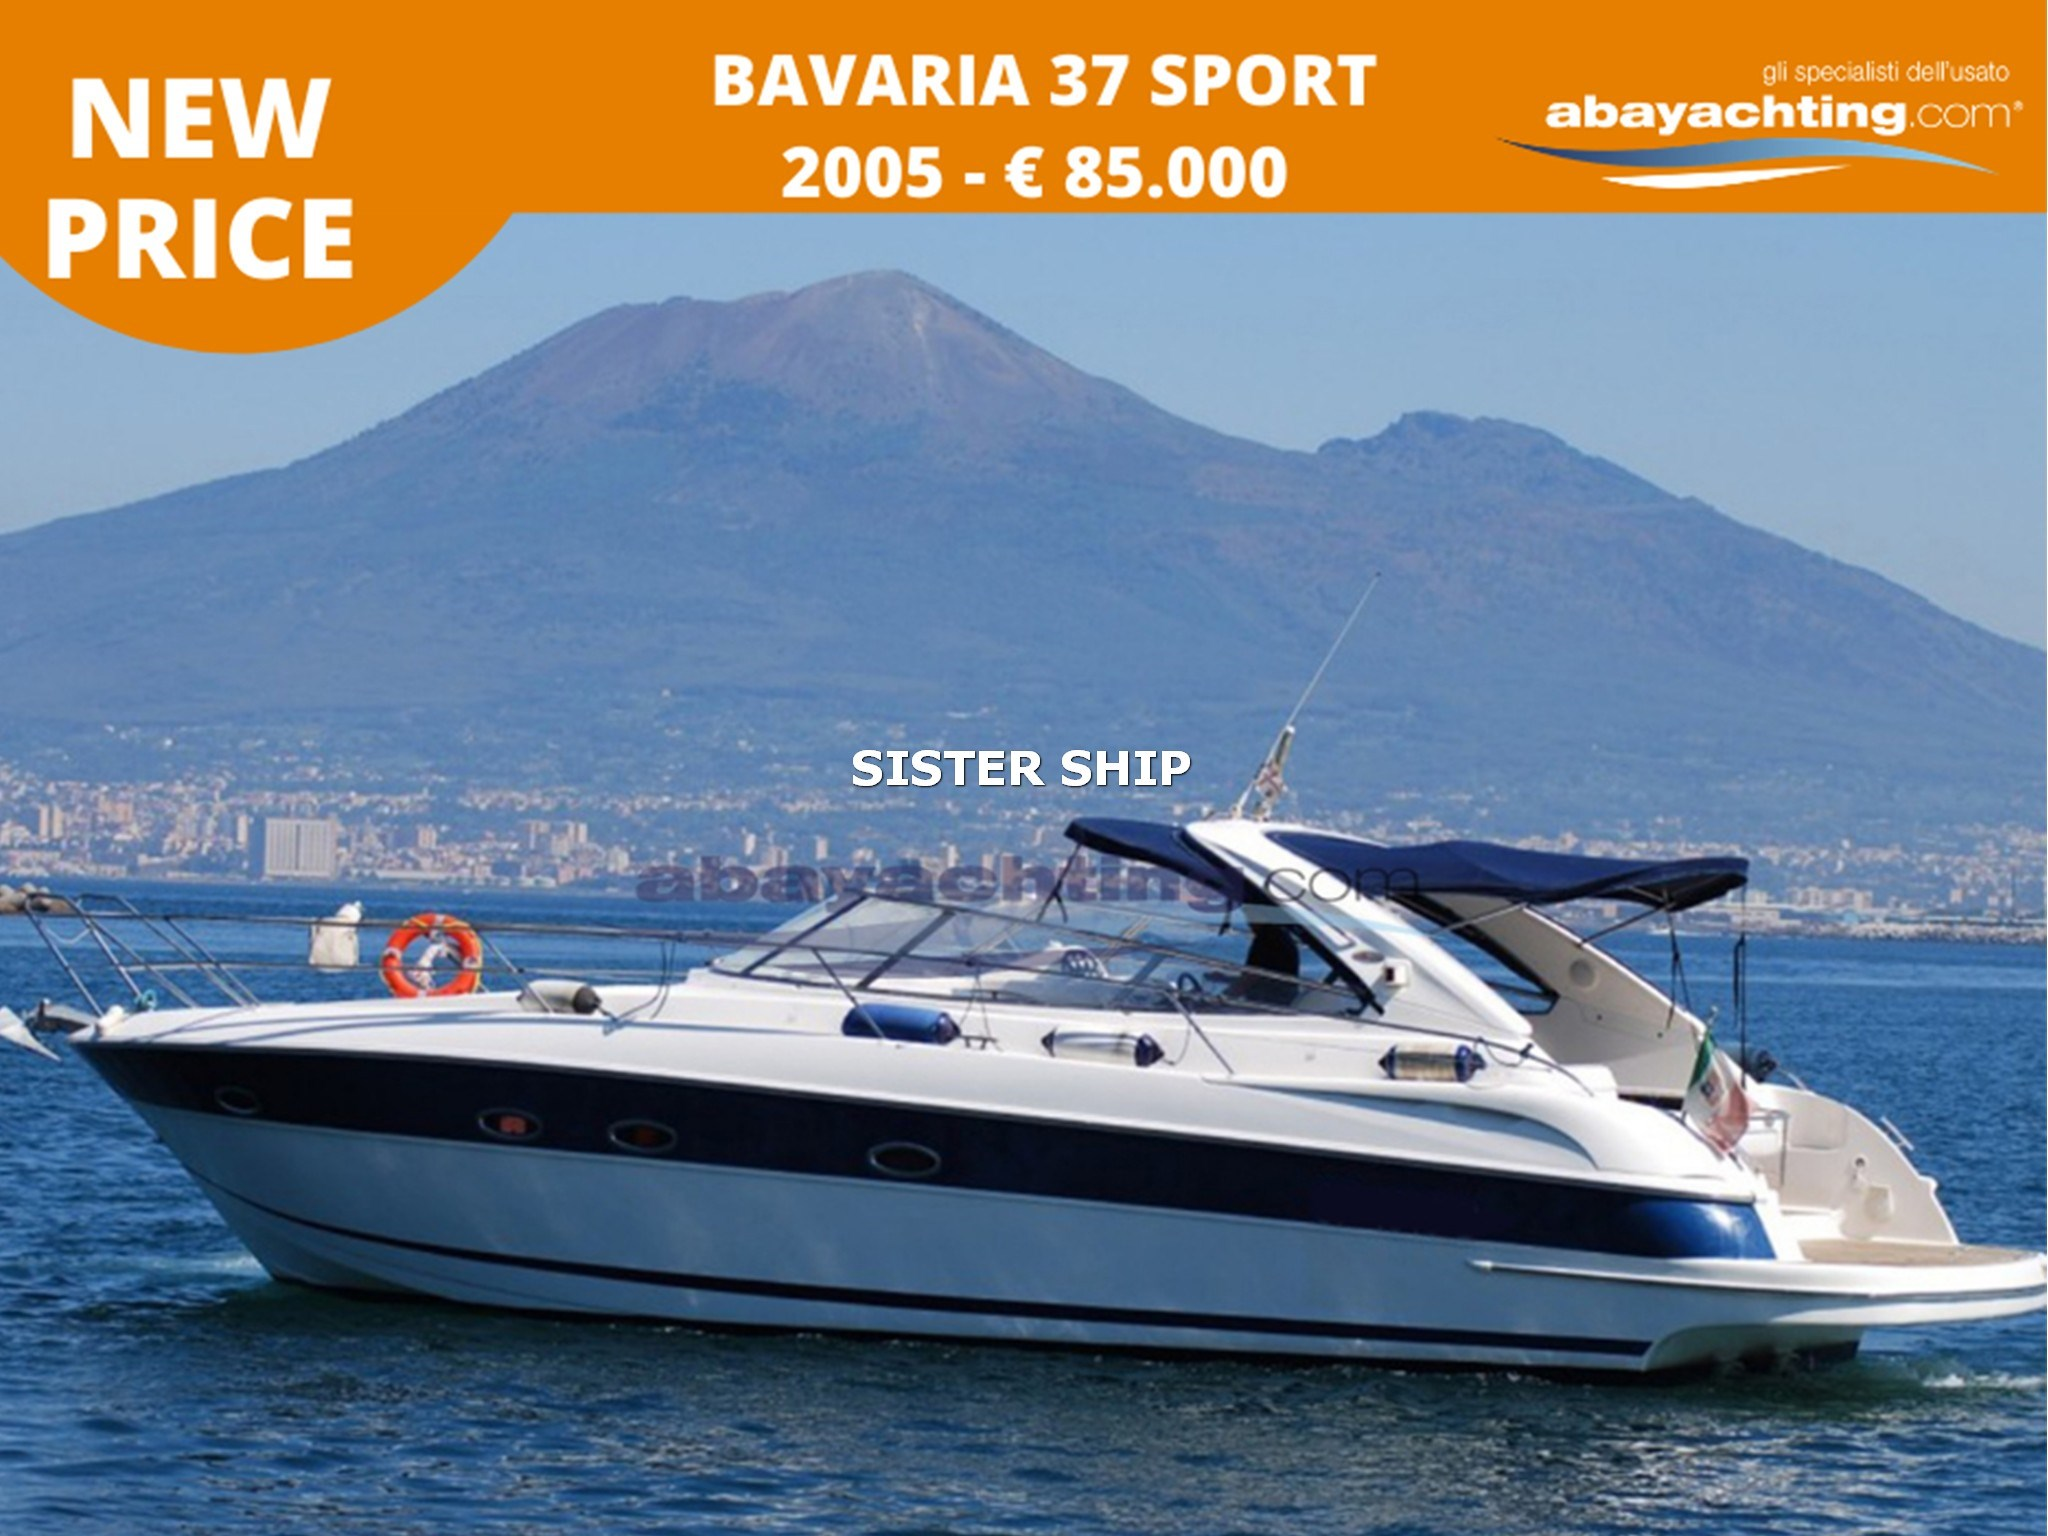 New price Bavaria 37 S